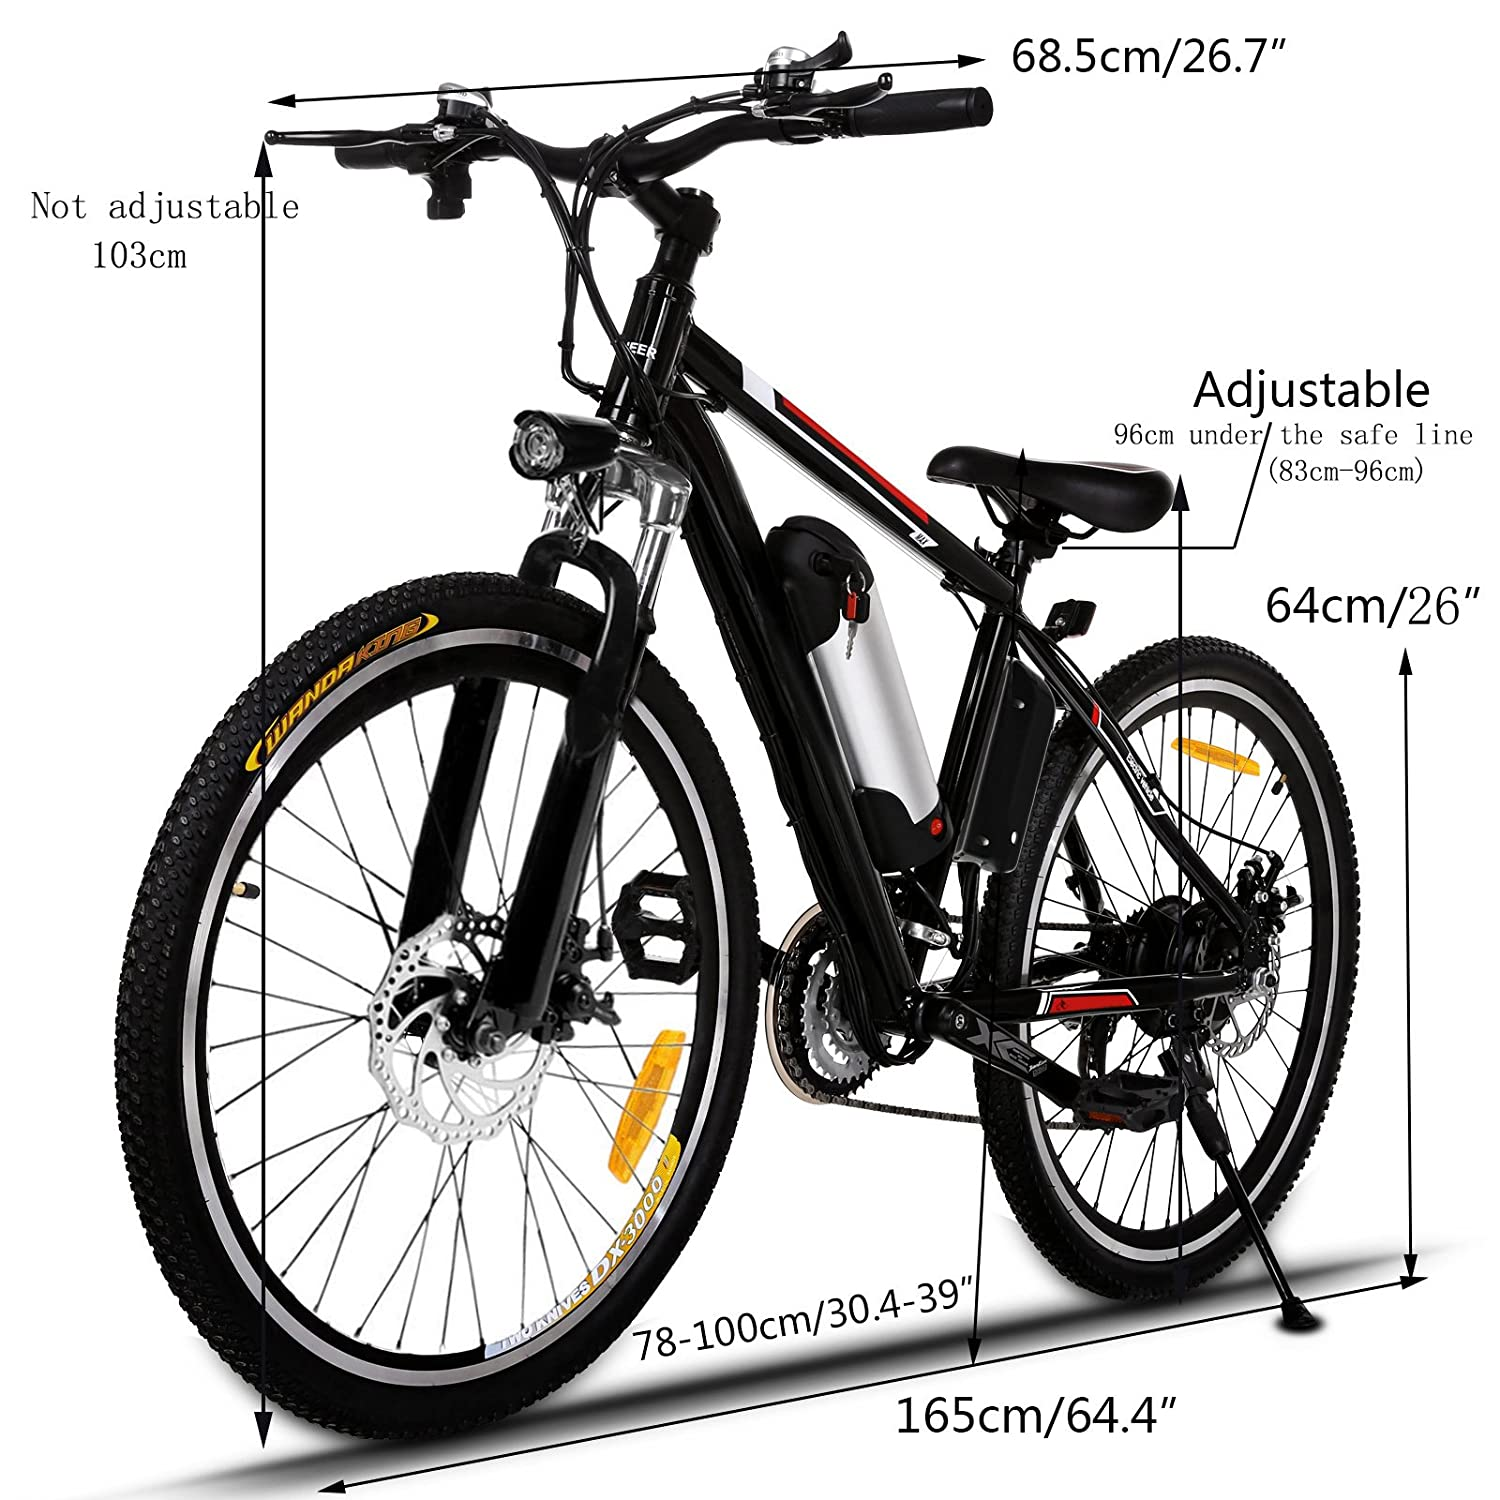 Aceshin 26 Electric Mountain Bike with Removable Large Capacity Lithium-Ion Battery 36V 250W , Electric Bike 21 Speed Gear and Three Working Modes